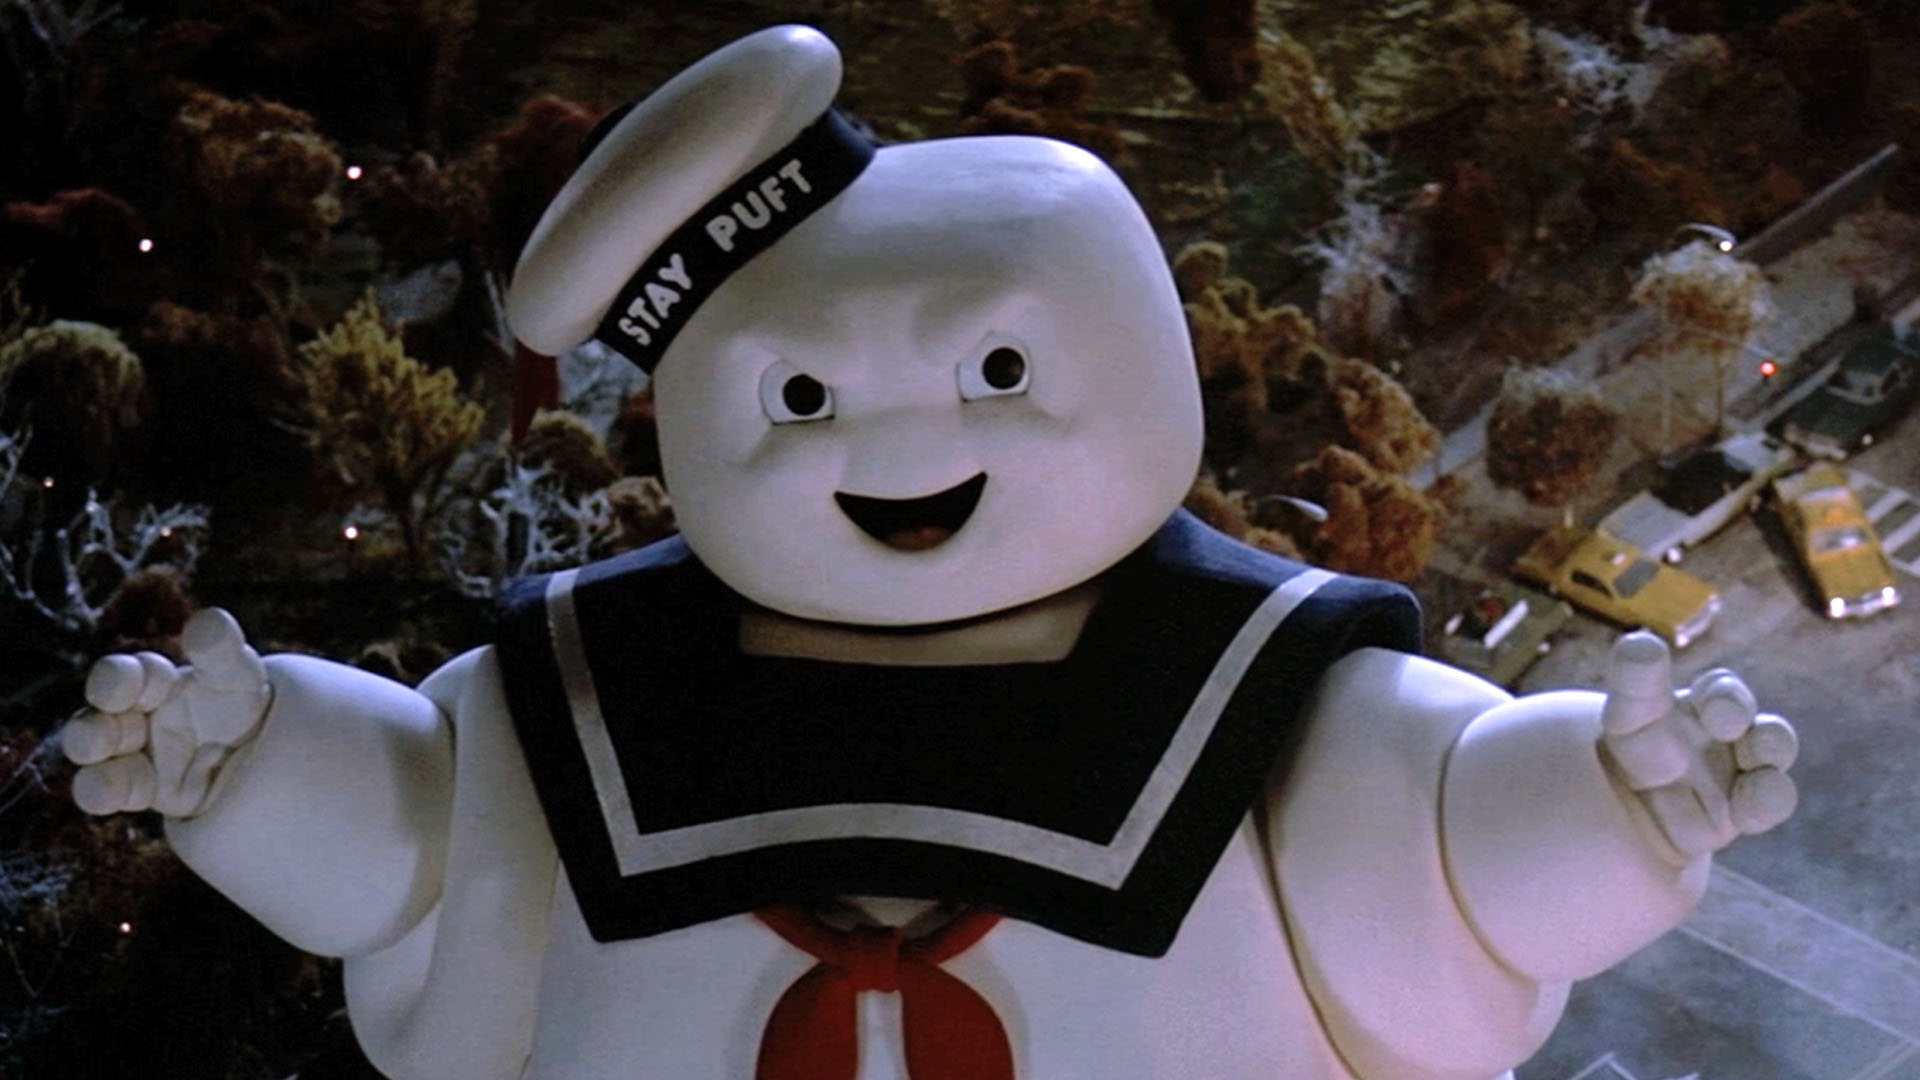 New Images from the 'Ghostbusters 2020' Set Bring Back the Ecto-1 and Tease a Stay Puft Appearance? - Bloody Disgusting